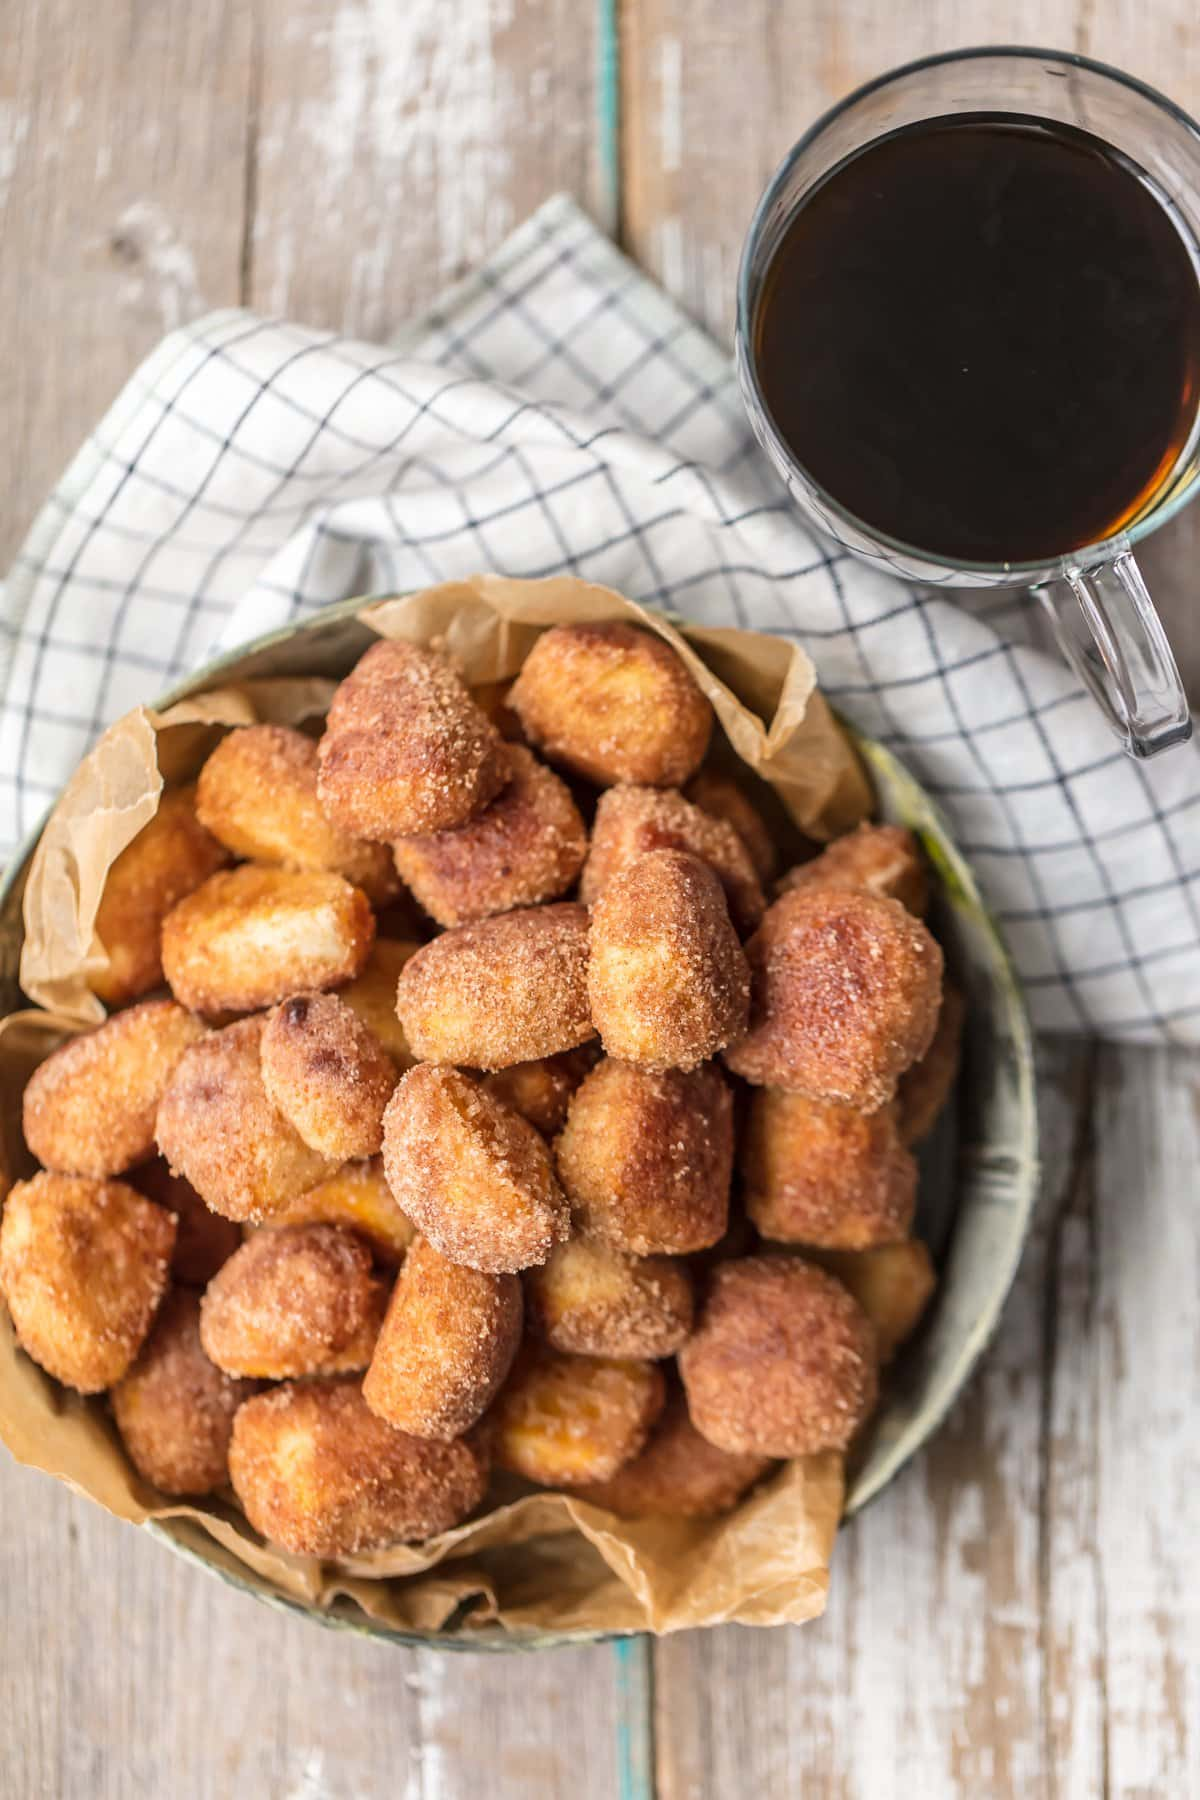 A basket of cinnamon sugar biscuit bites next to a cup of coffee